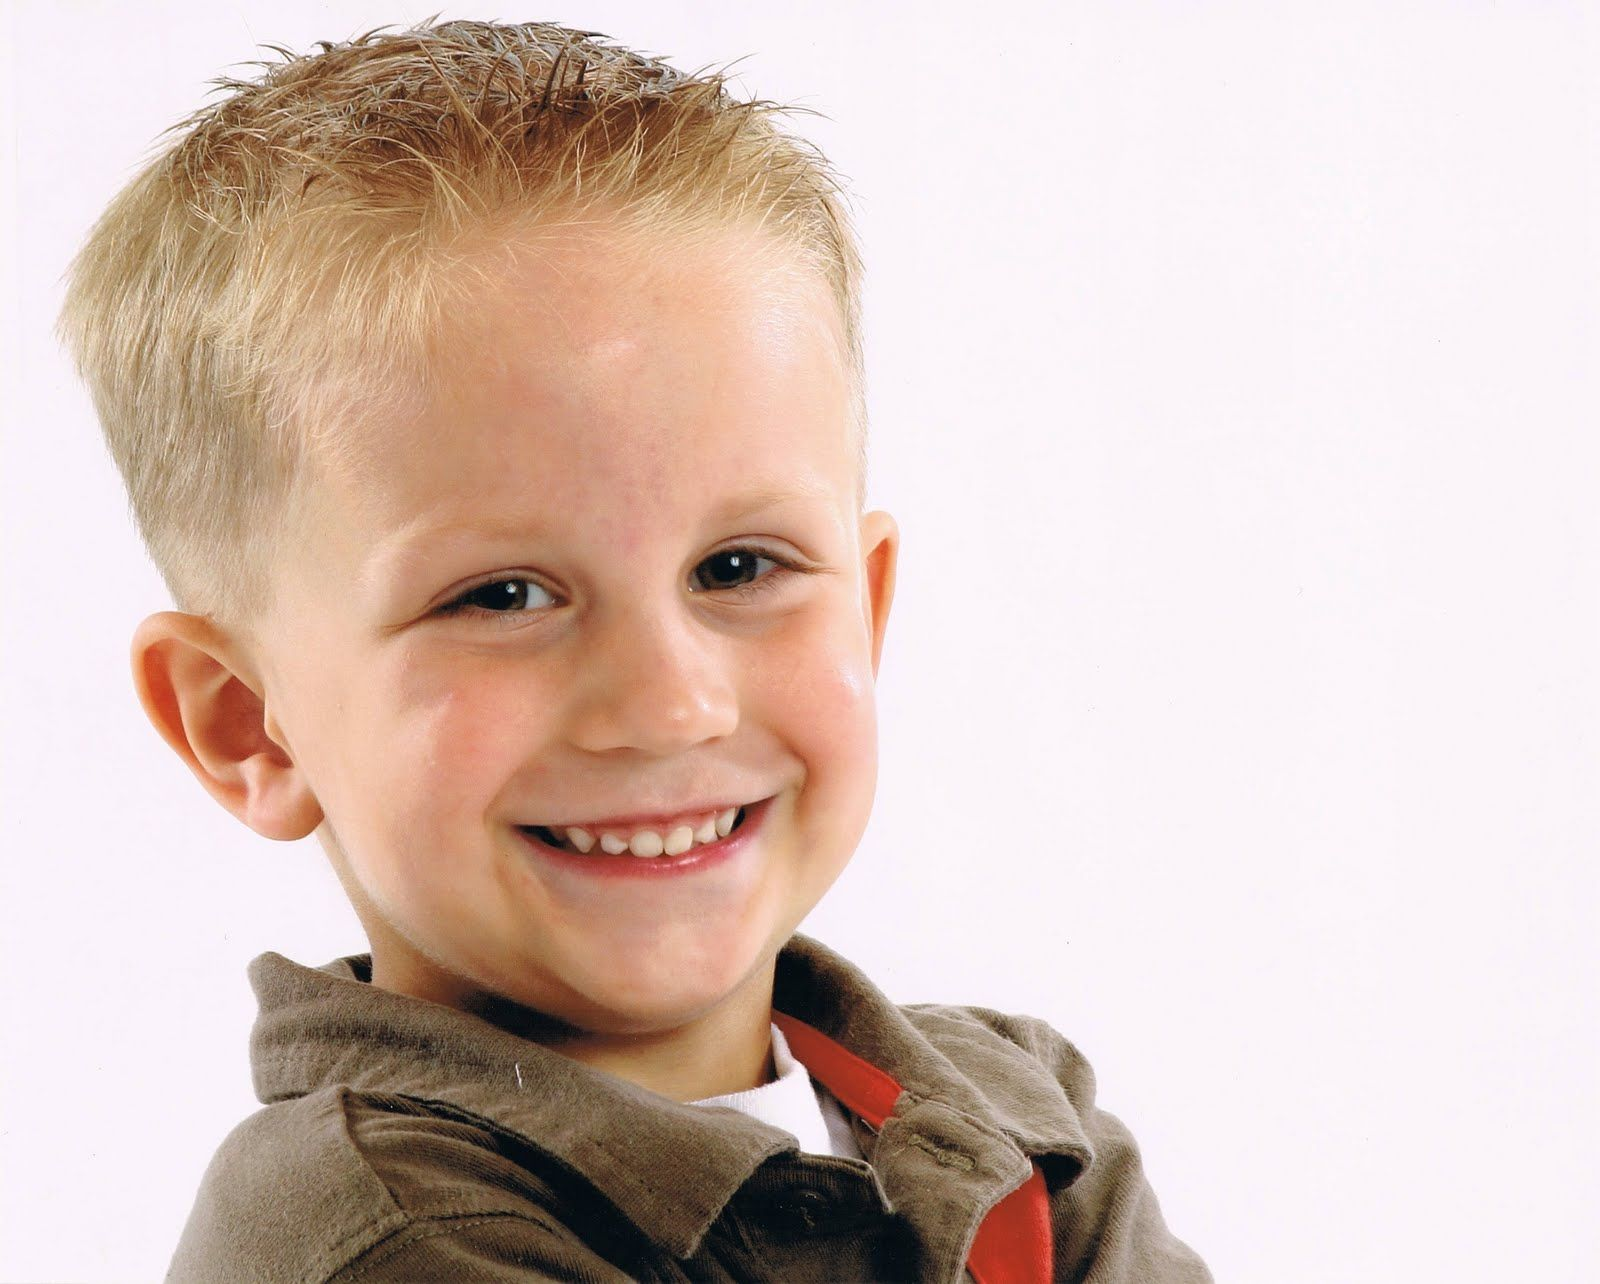 Six Year Old Boy Haircut Lob Hairstyle Pictures Curly Mid Lengh